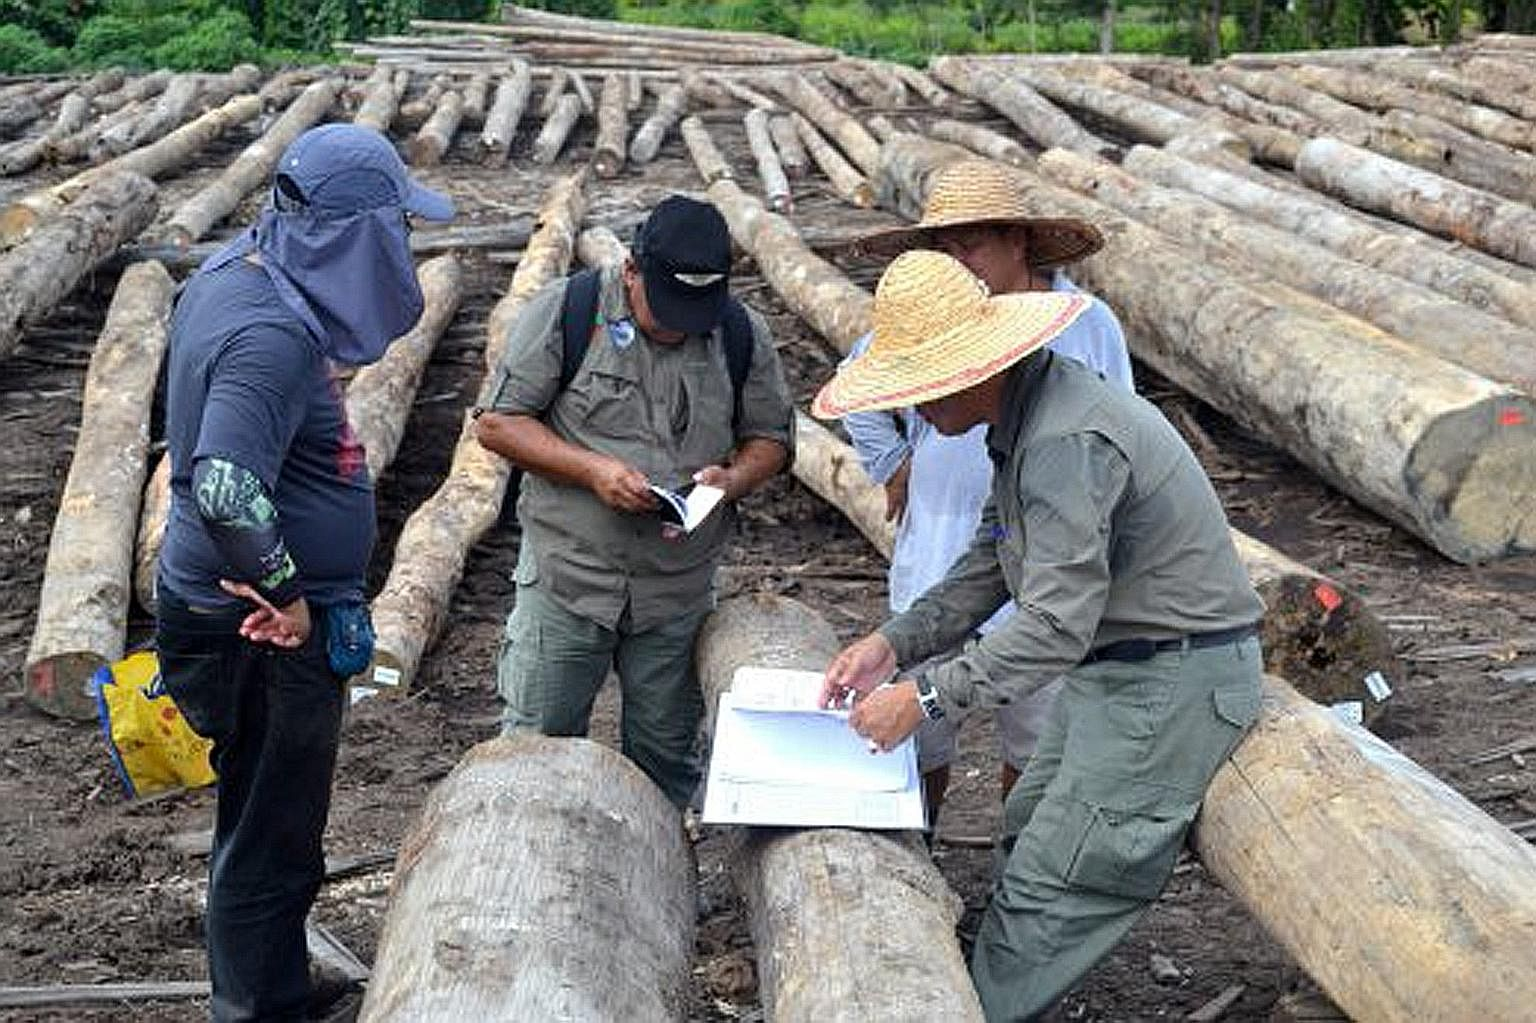 Personnel from the Malaysian Anti-Corruption Commission, police, state forestry department and Inland Revenue Board conducting checks at sawmills and log ponds across Sarawak in May last year.